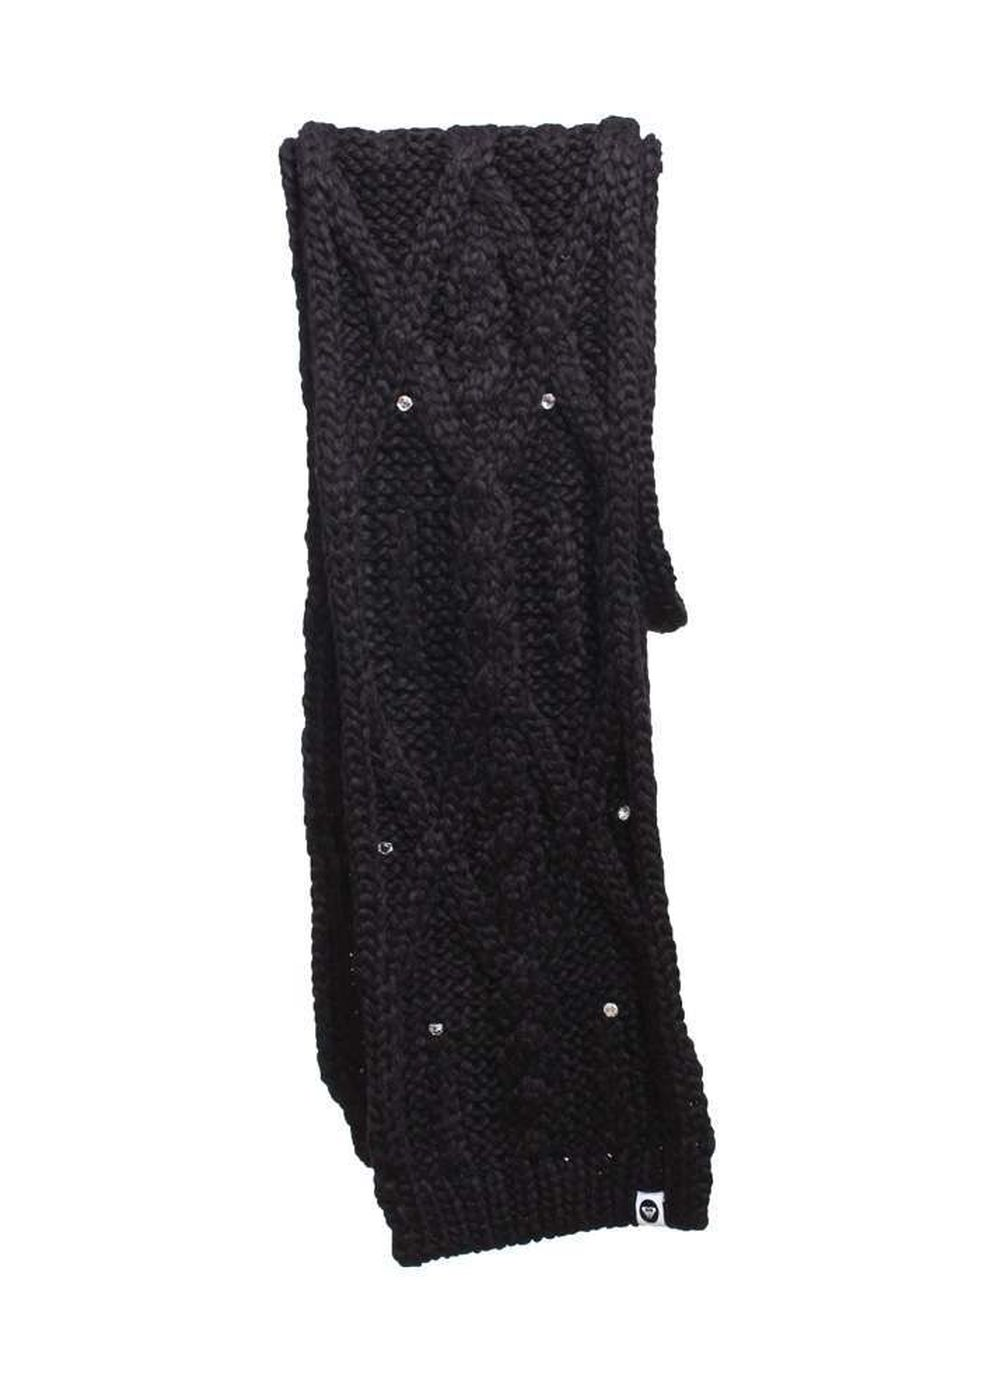 ROXY SHOOTING STARS SCARF Anthracite